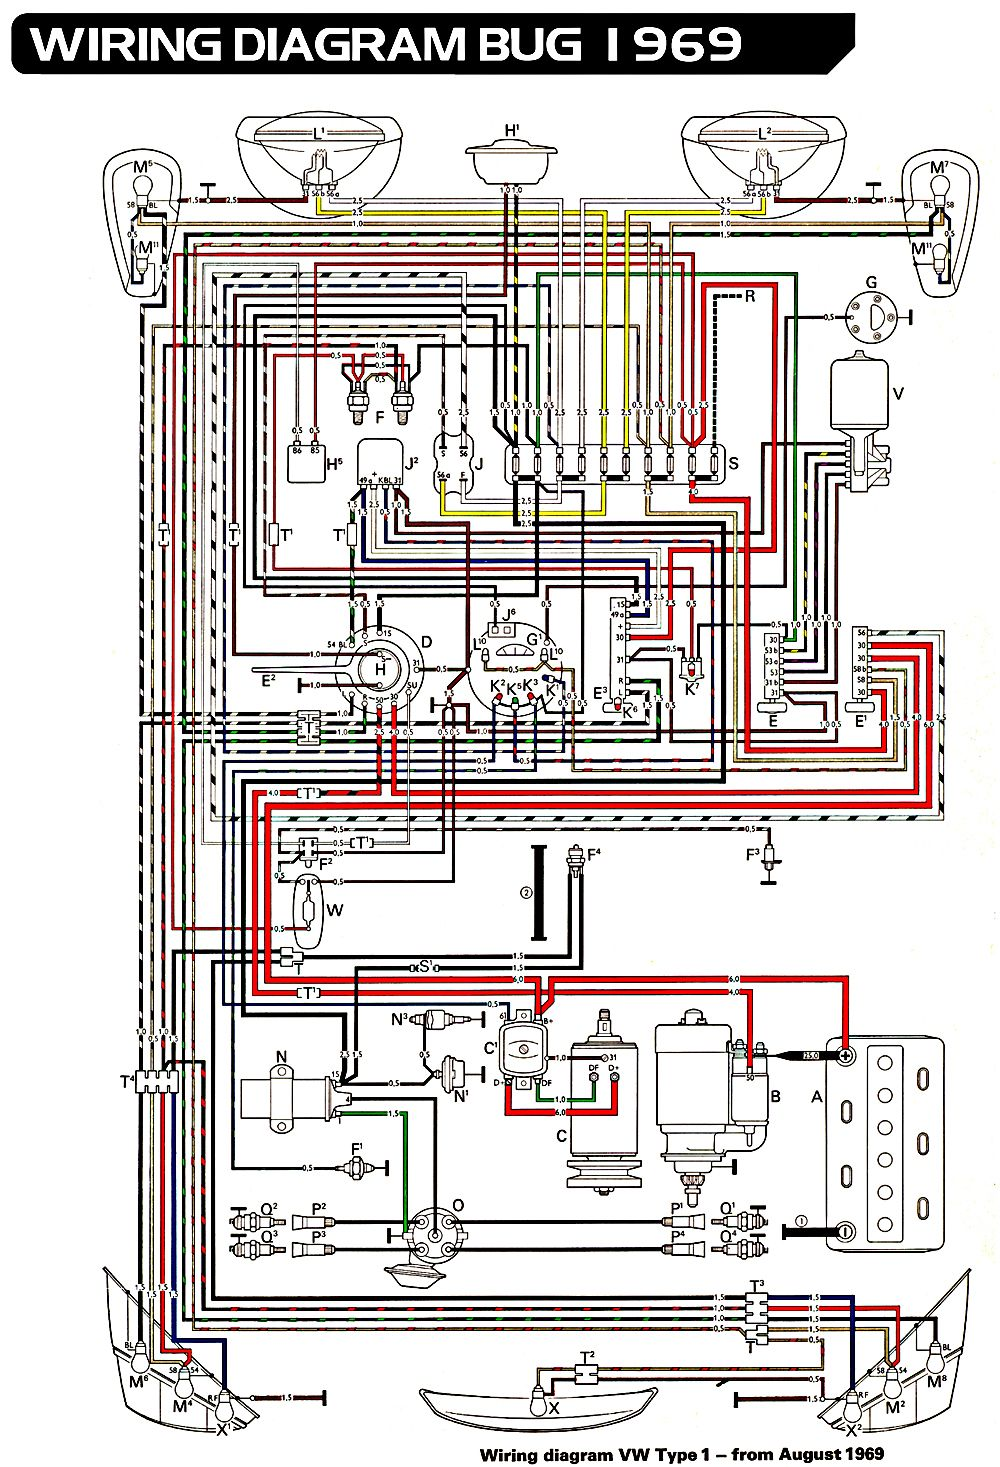 volkswagen beetle wiring diagram 1966 vw beetle wiring v w rh pinterest ch  1966 vw beetle electrical diagram